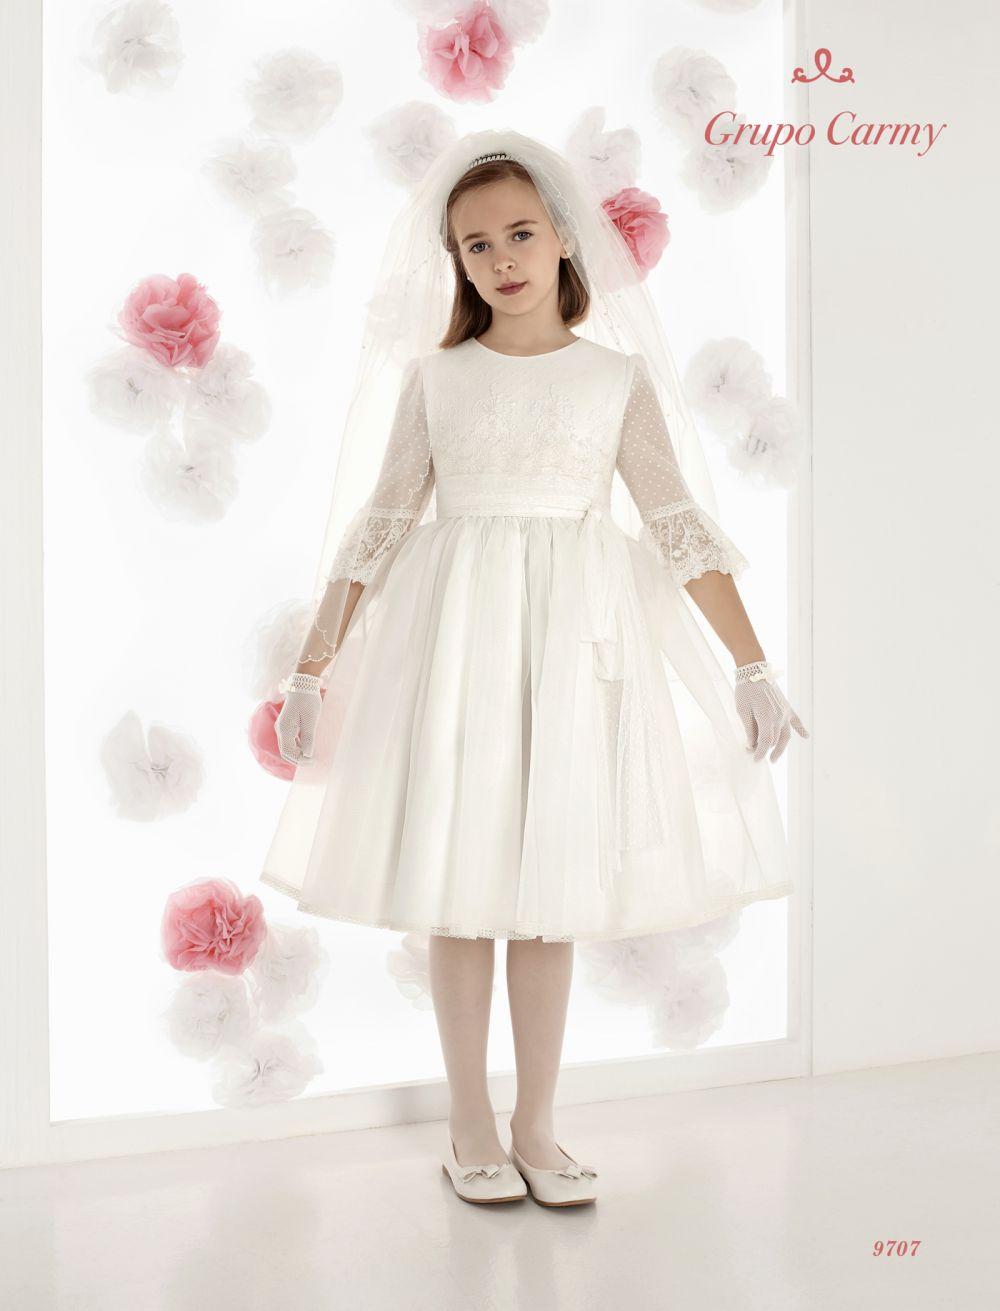 Communion Dress - Carmy 9707